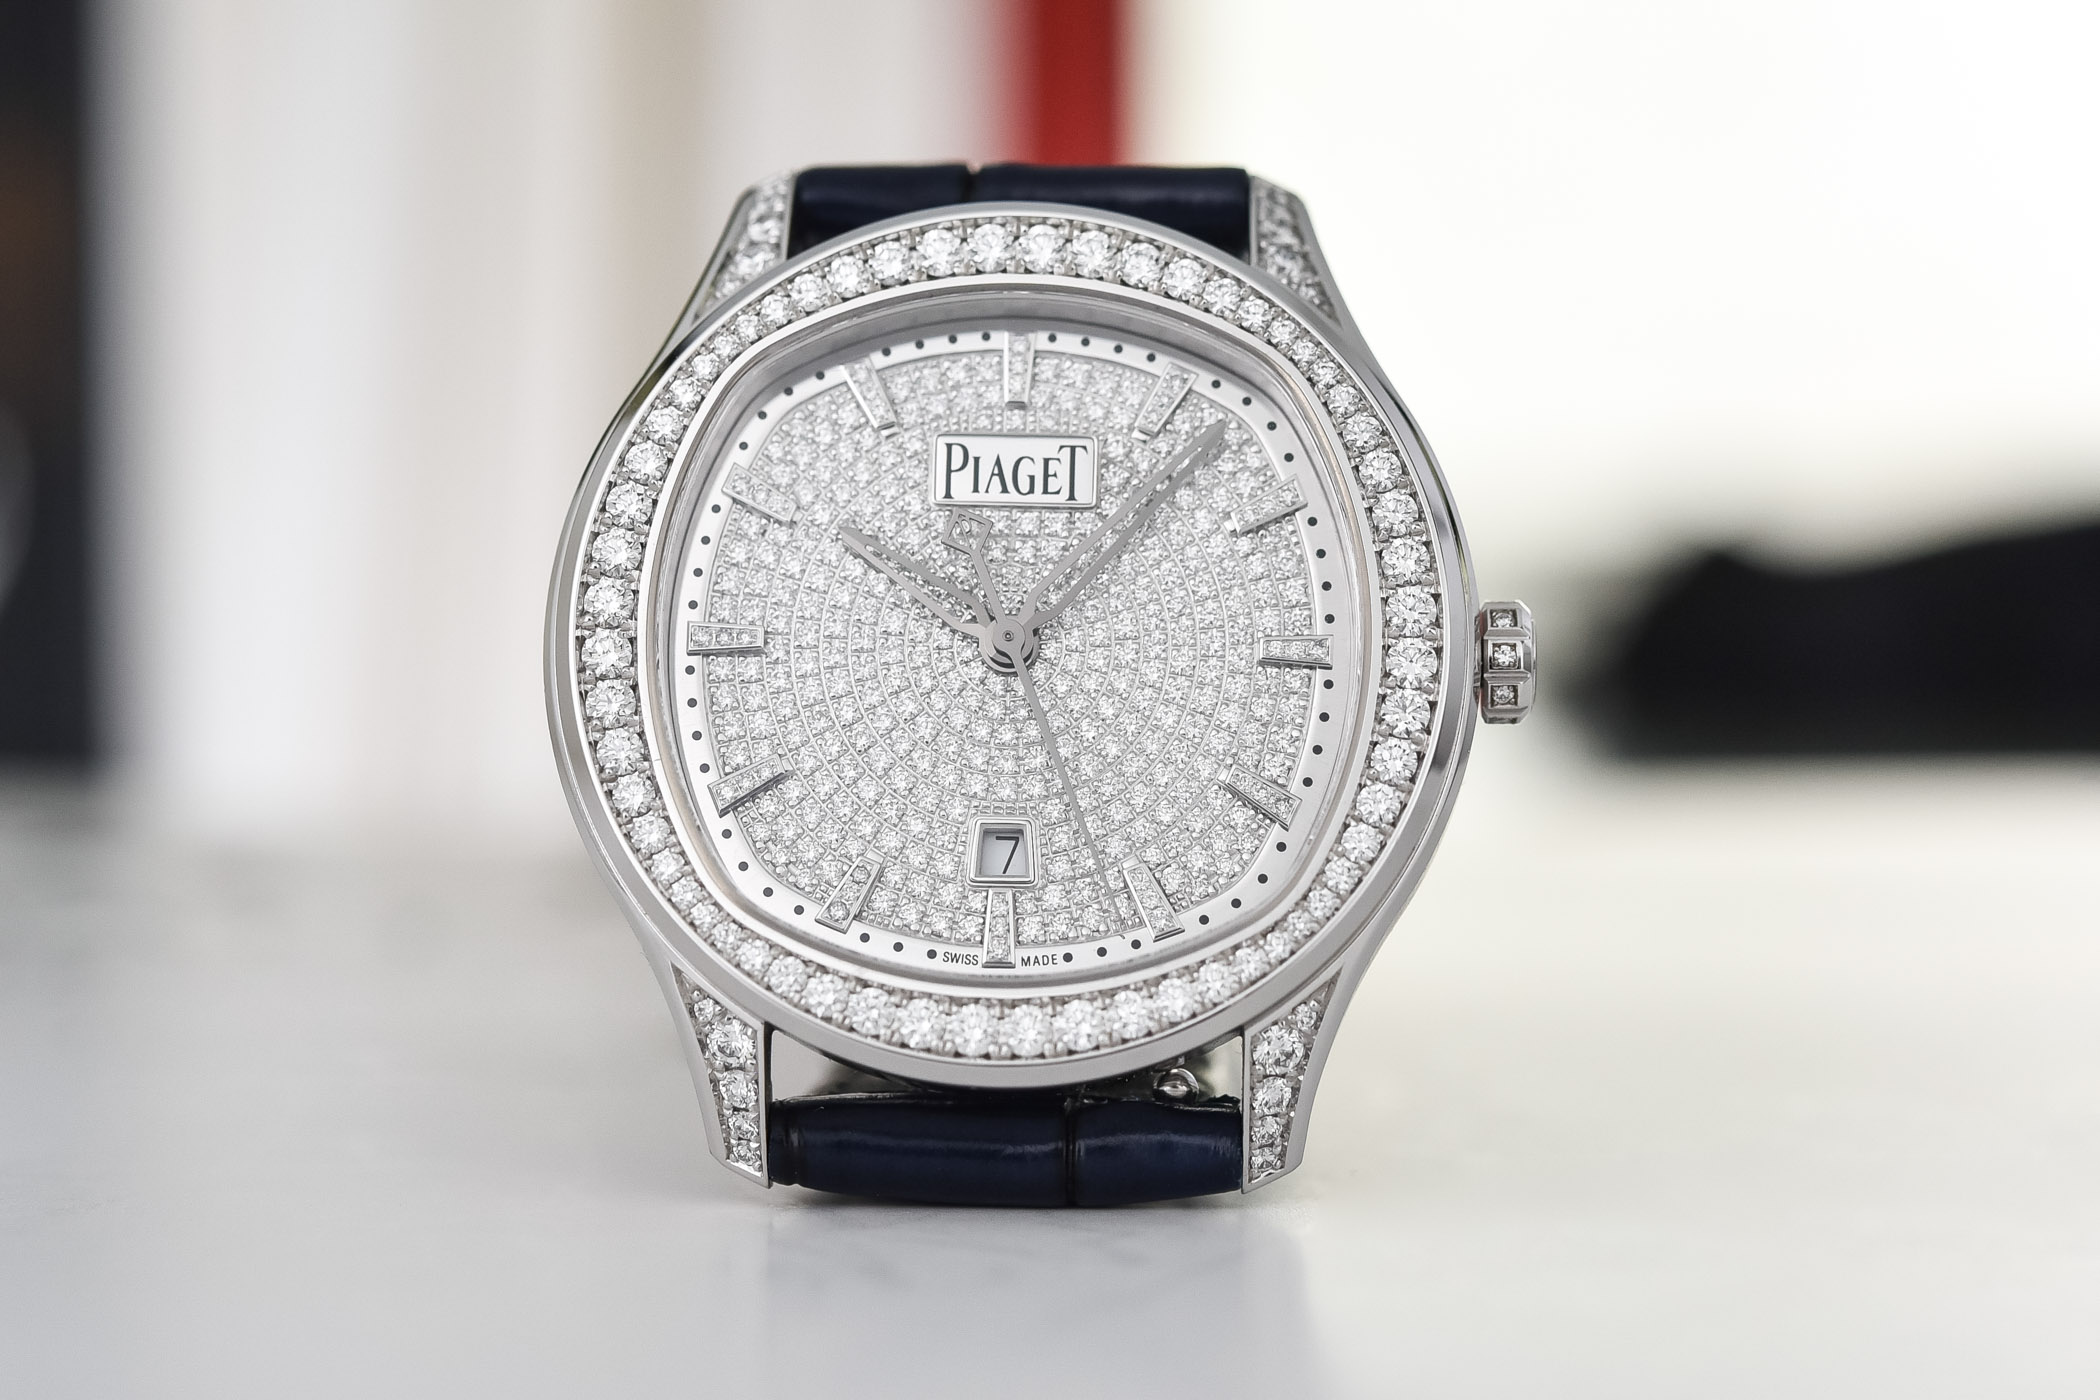 Piaget Polo Date 36mm